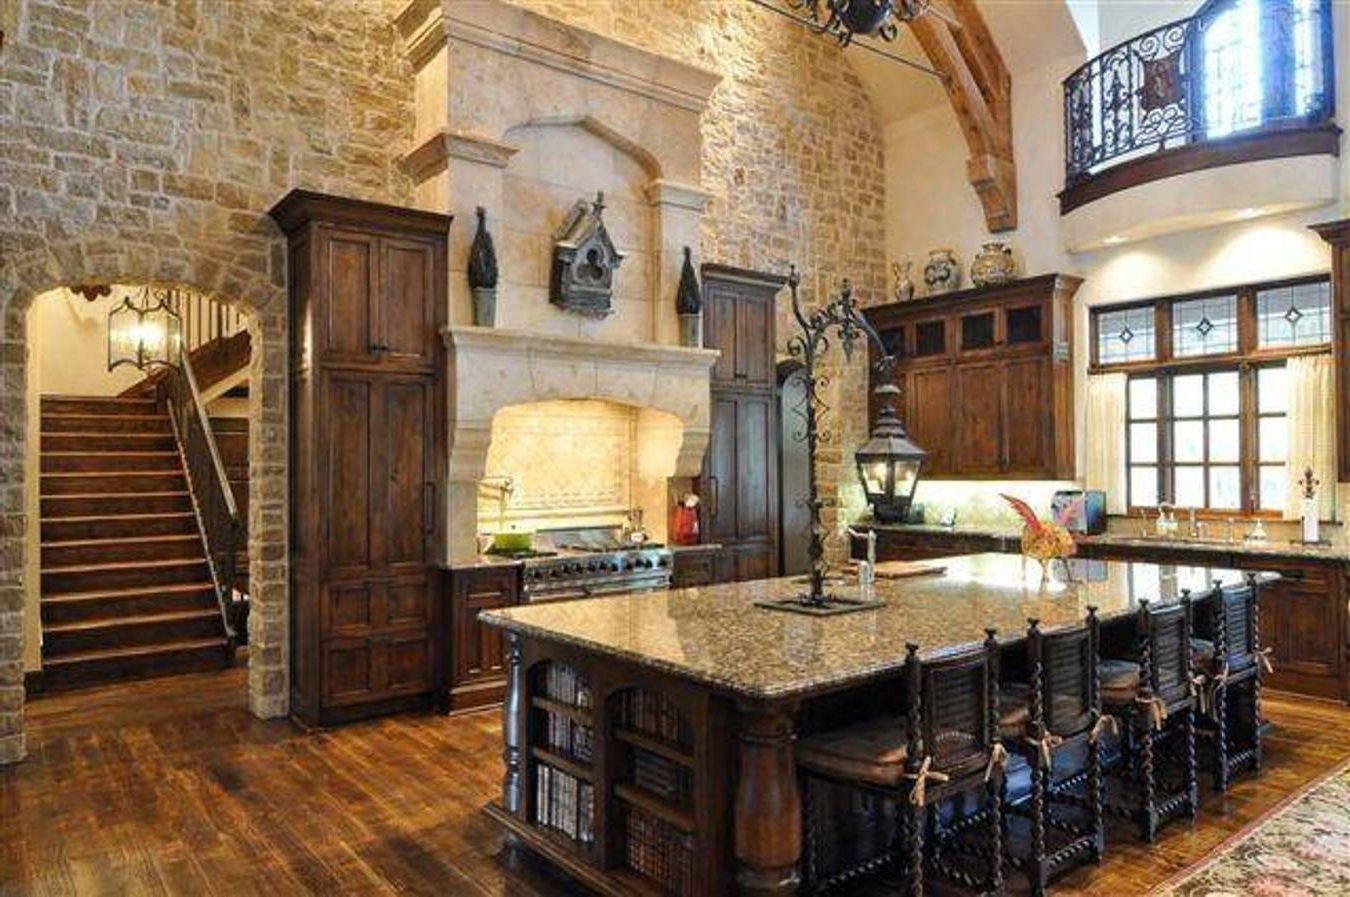 Mediterranean Rustic Tuscan Kitchen With Stone Wall